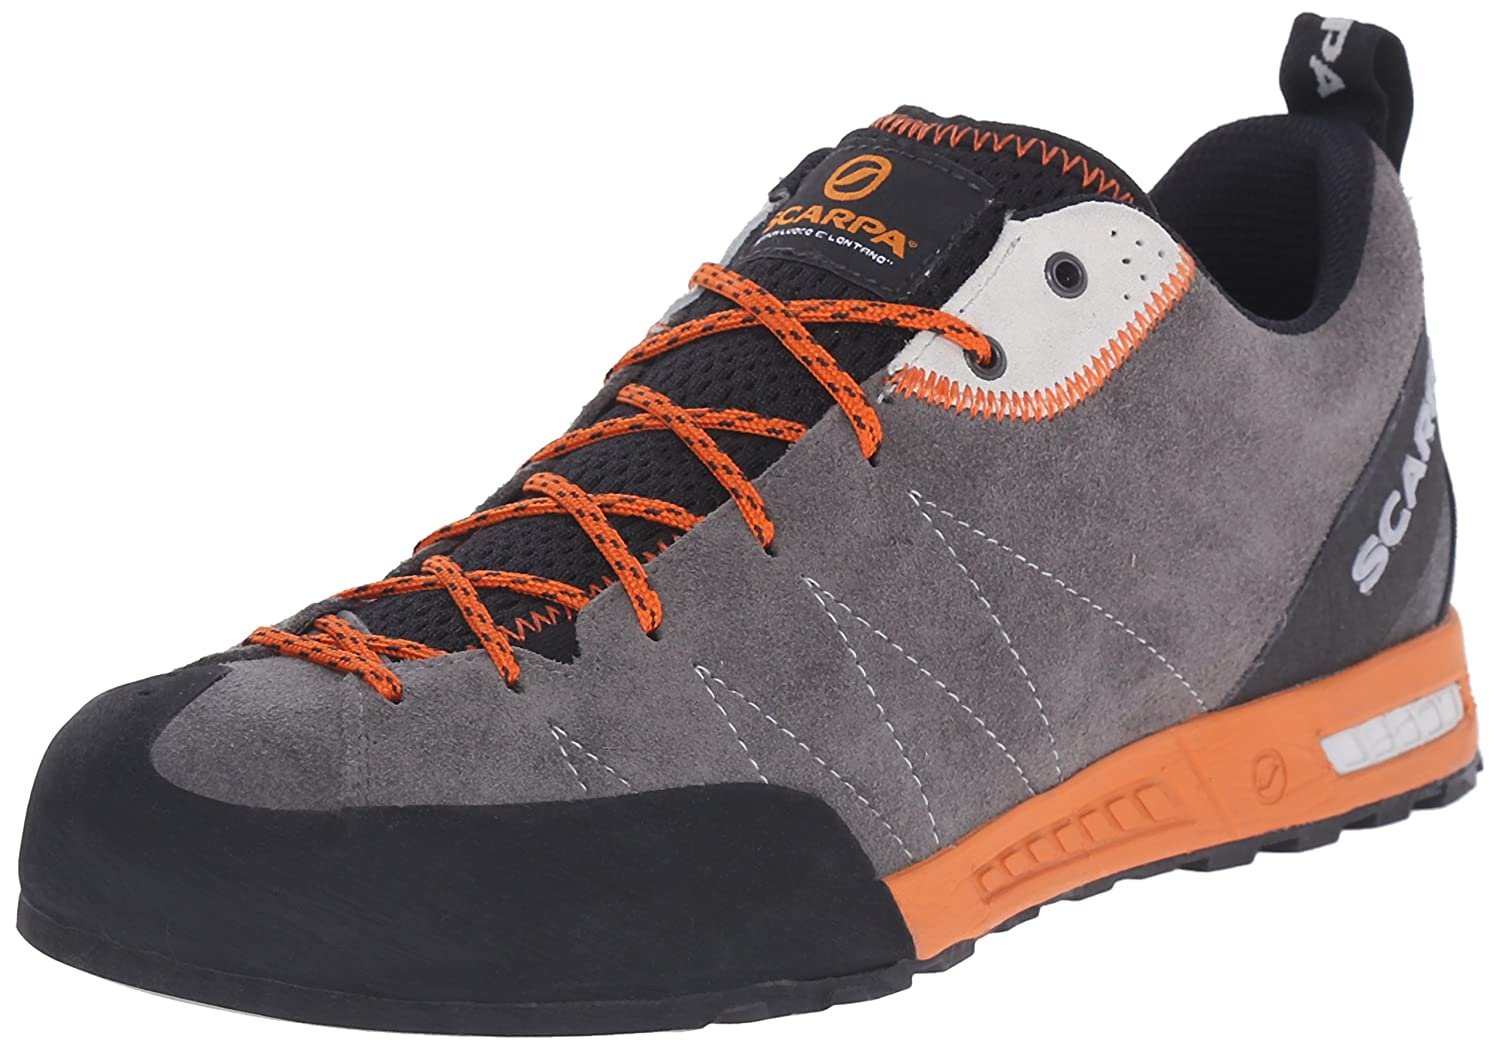 Scarpa Men's Gecko Approach Shoe 72601/350-SrkTon-42